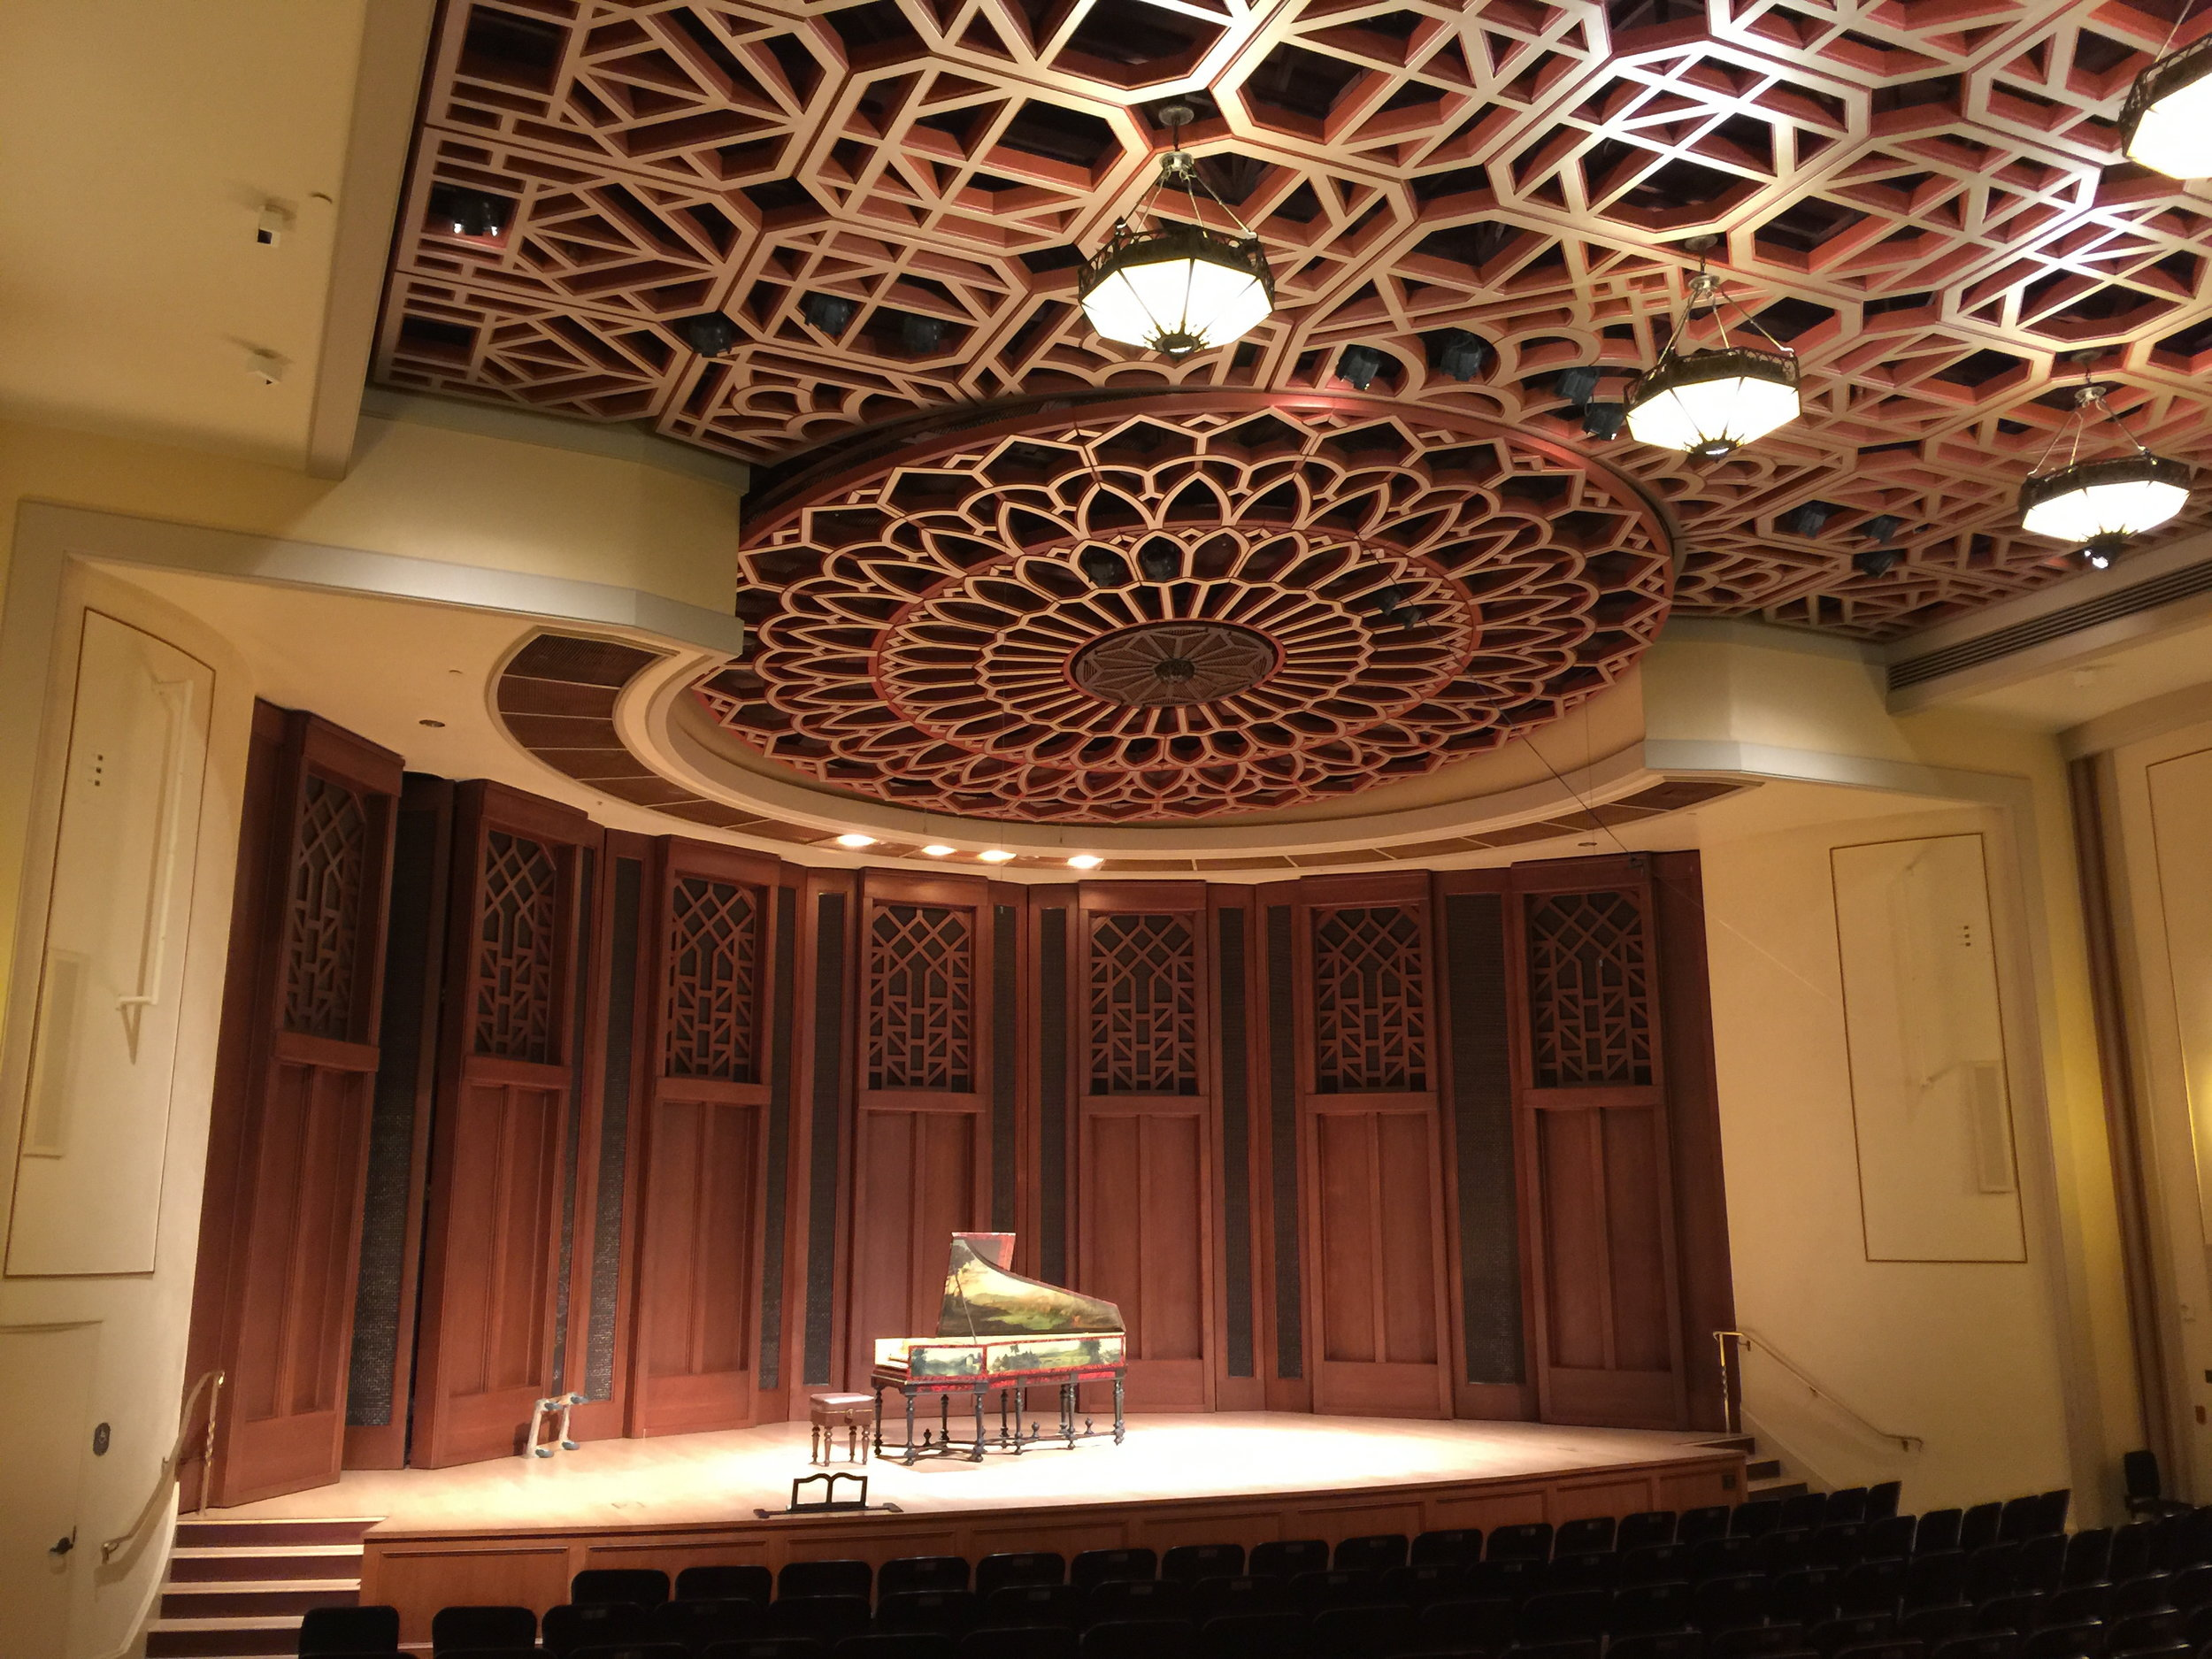 before a performance of Bach's Goldberg Variations, presented by Camerata Pacifica, at Hahn Hall, Music Academy of the West, Santa Barbara, CA